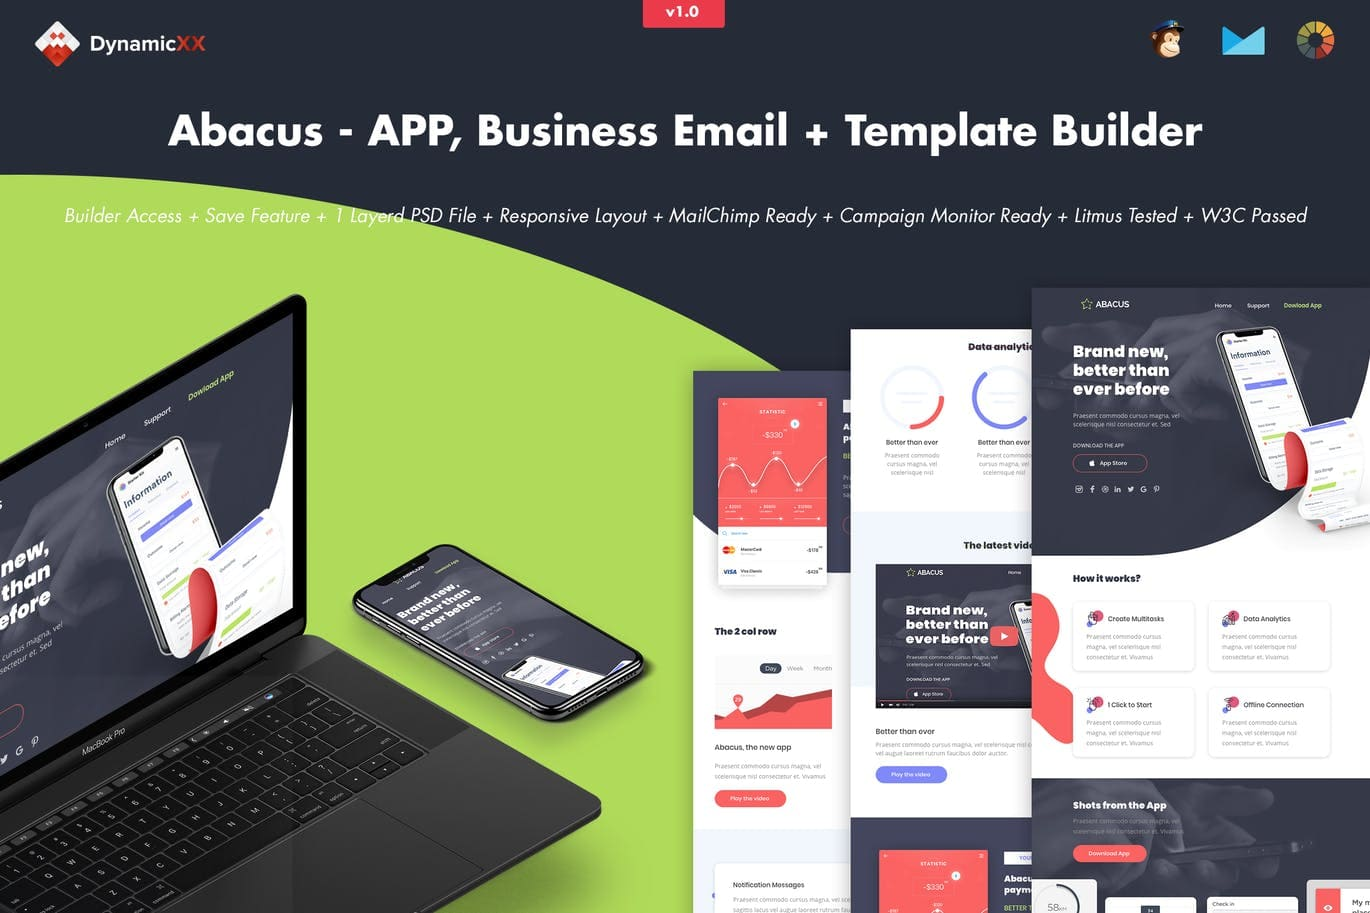 Abacus - APP Business Email + Template Builder